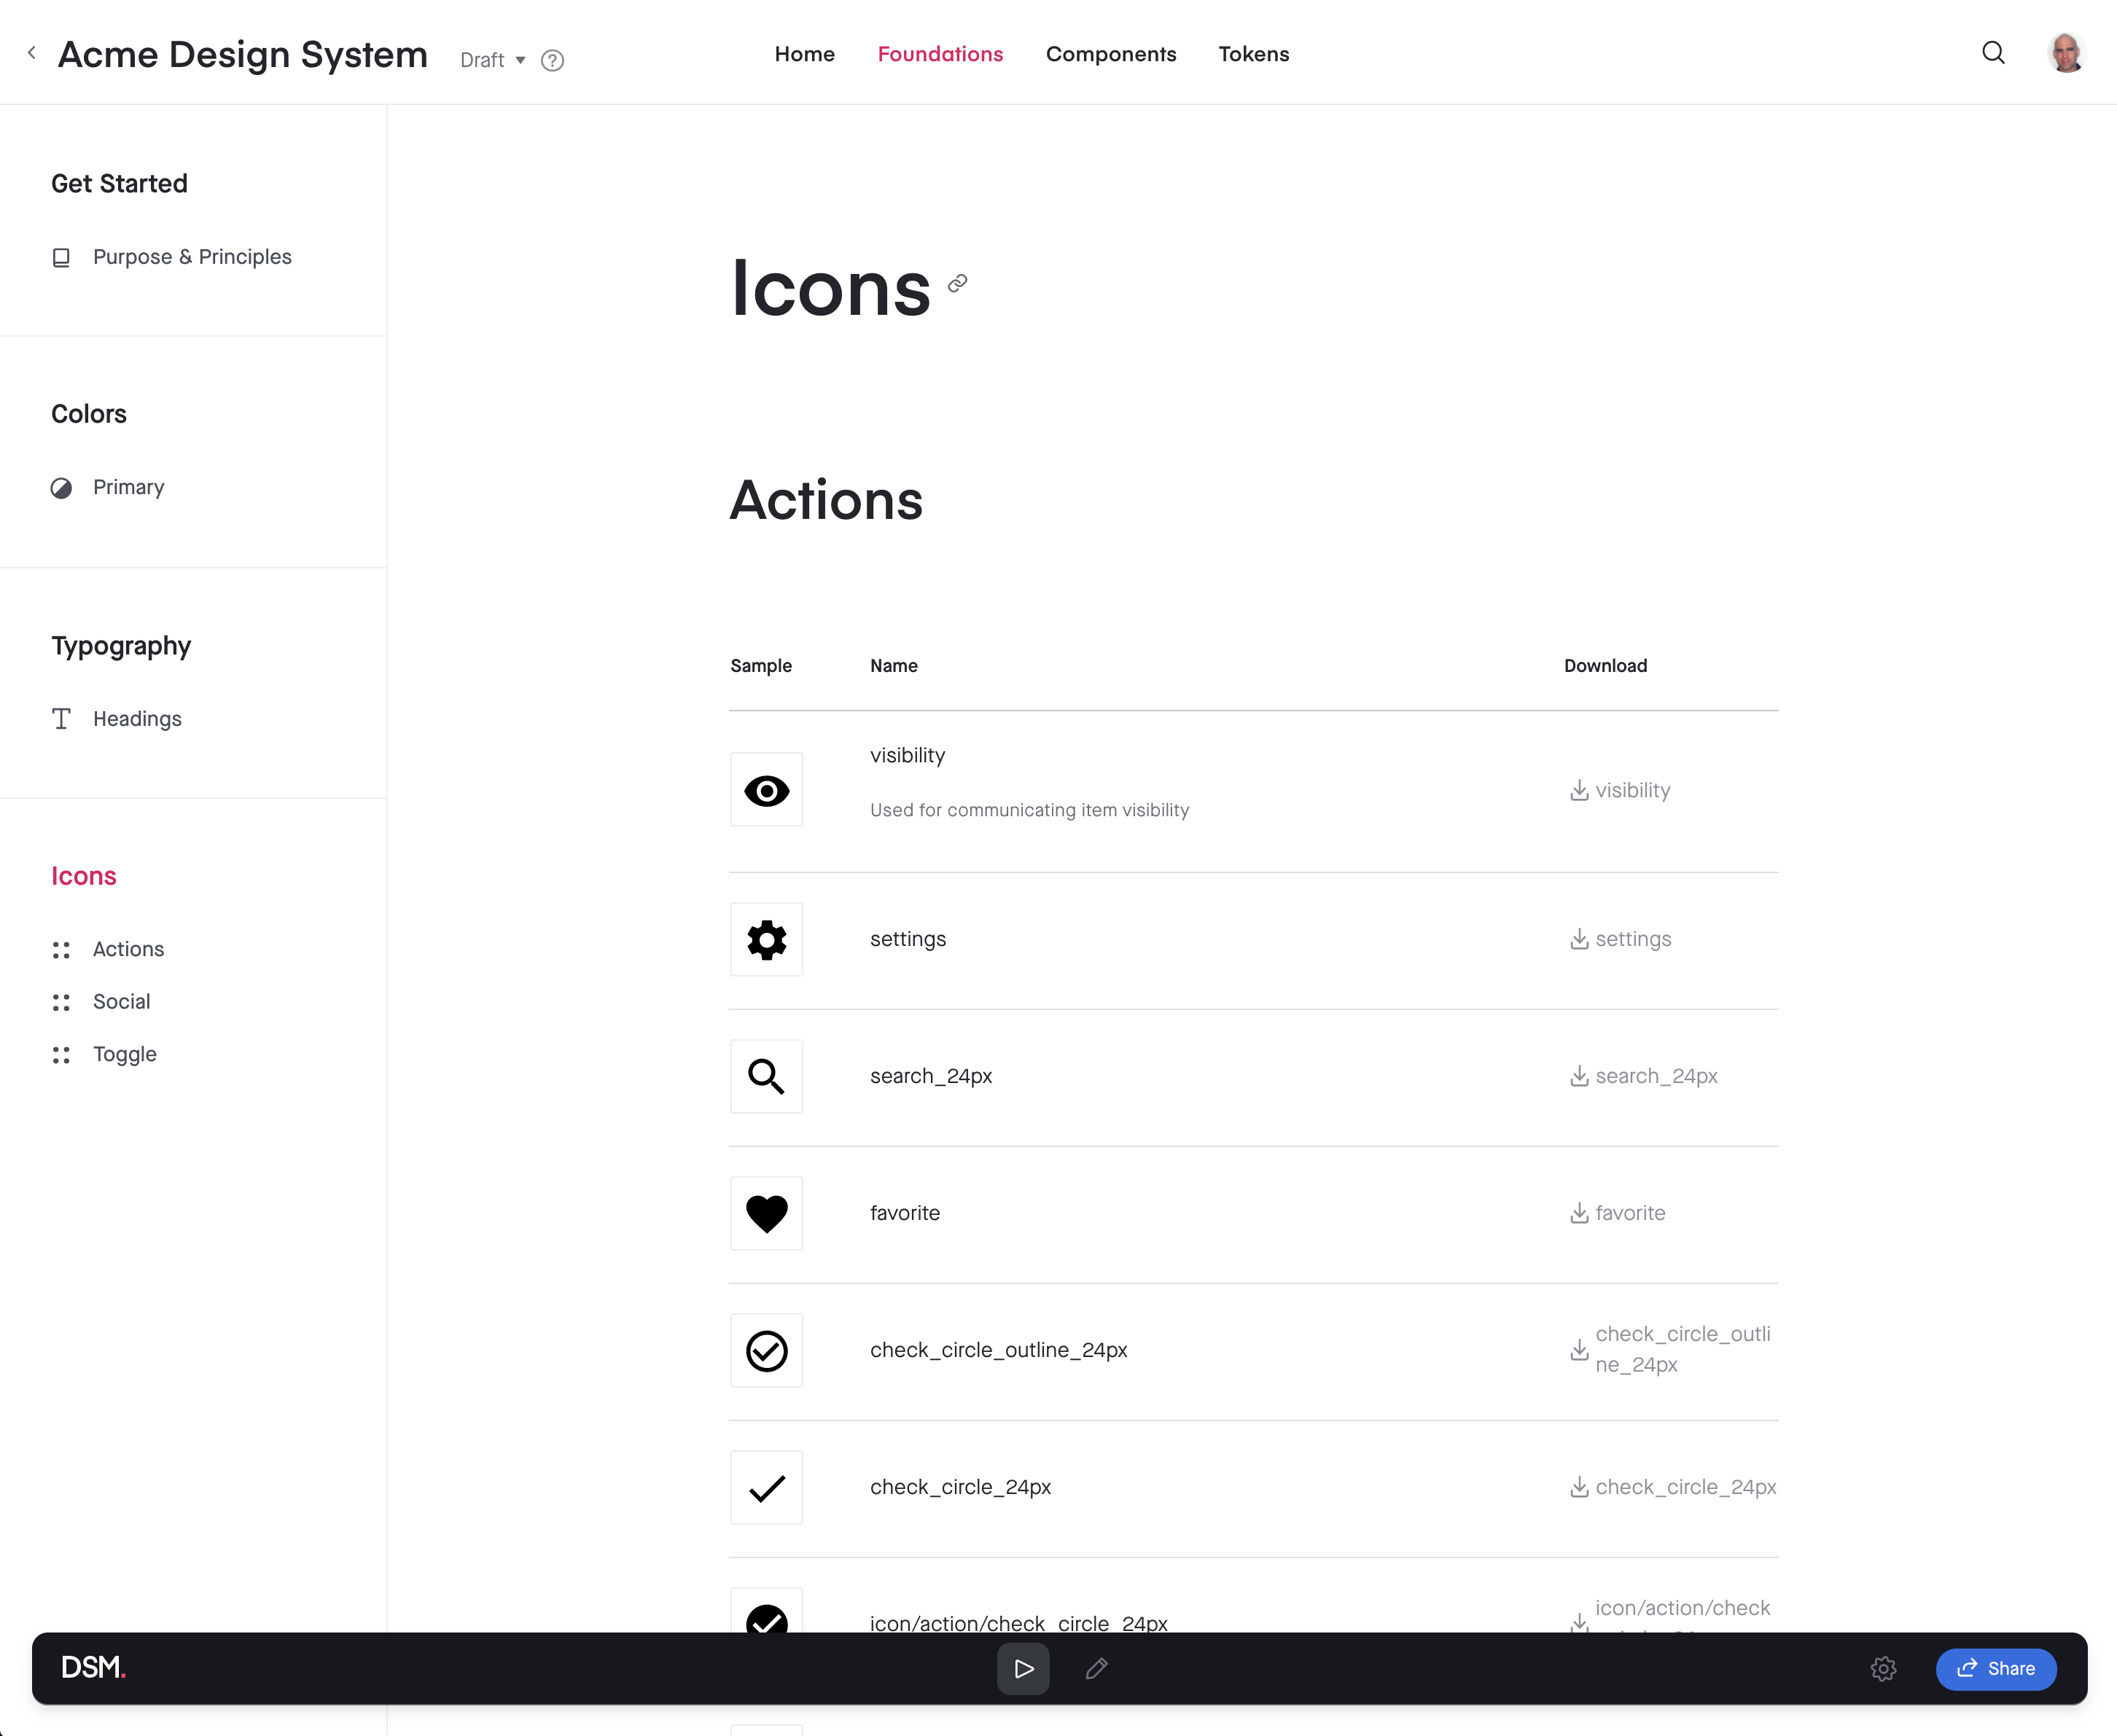 invision-dsm-symbols-add-as-icons.png